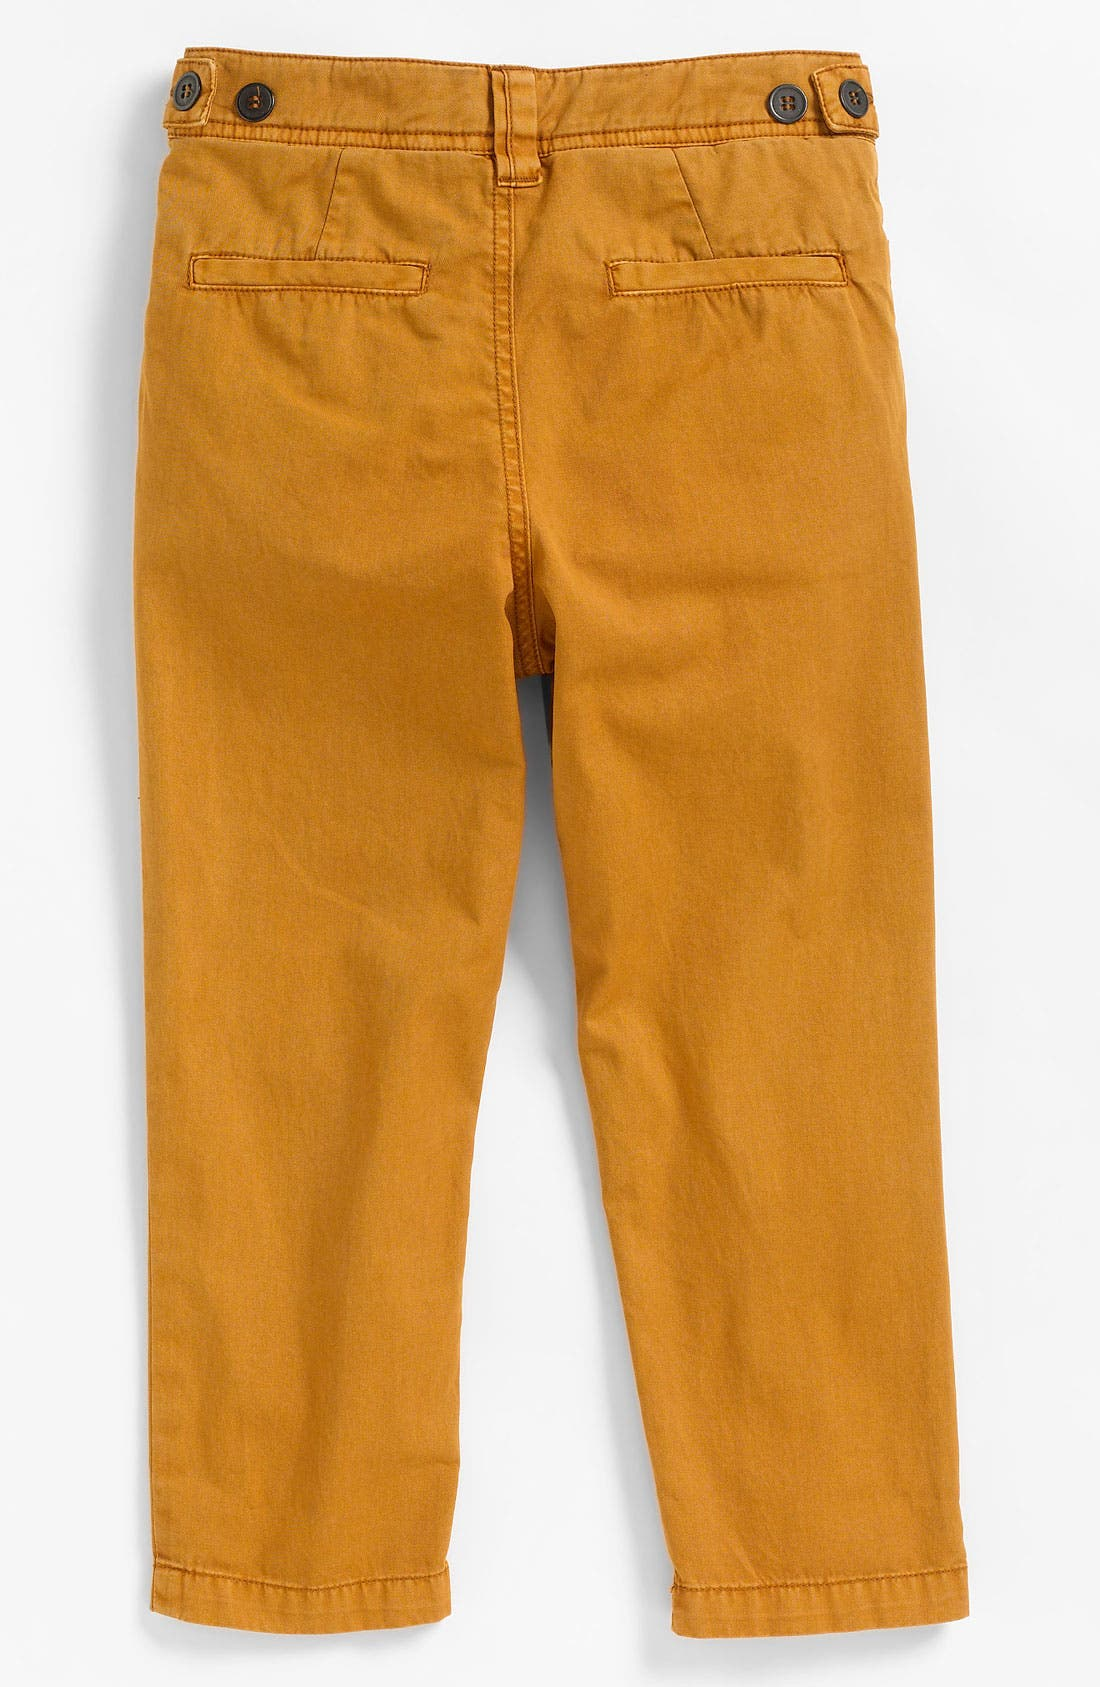 Alternate Image 1 Selected - LITTLE MARC JACOBS Flat Front Cotton Twill Pants (Toddler, Little Boys & Big Boys)